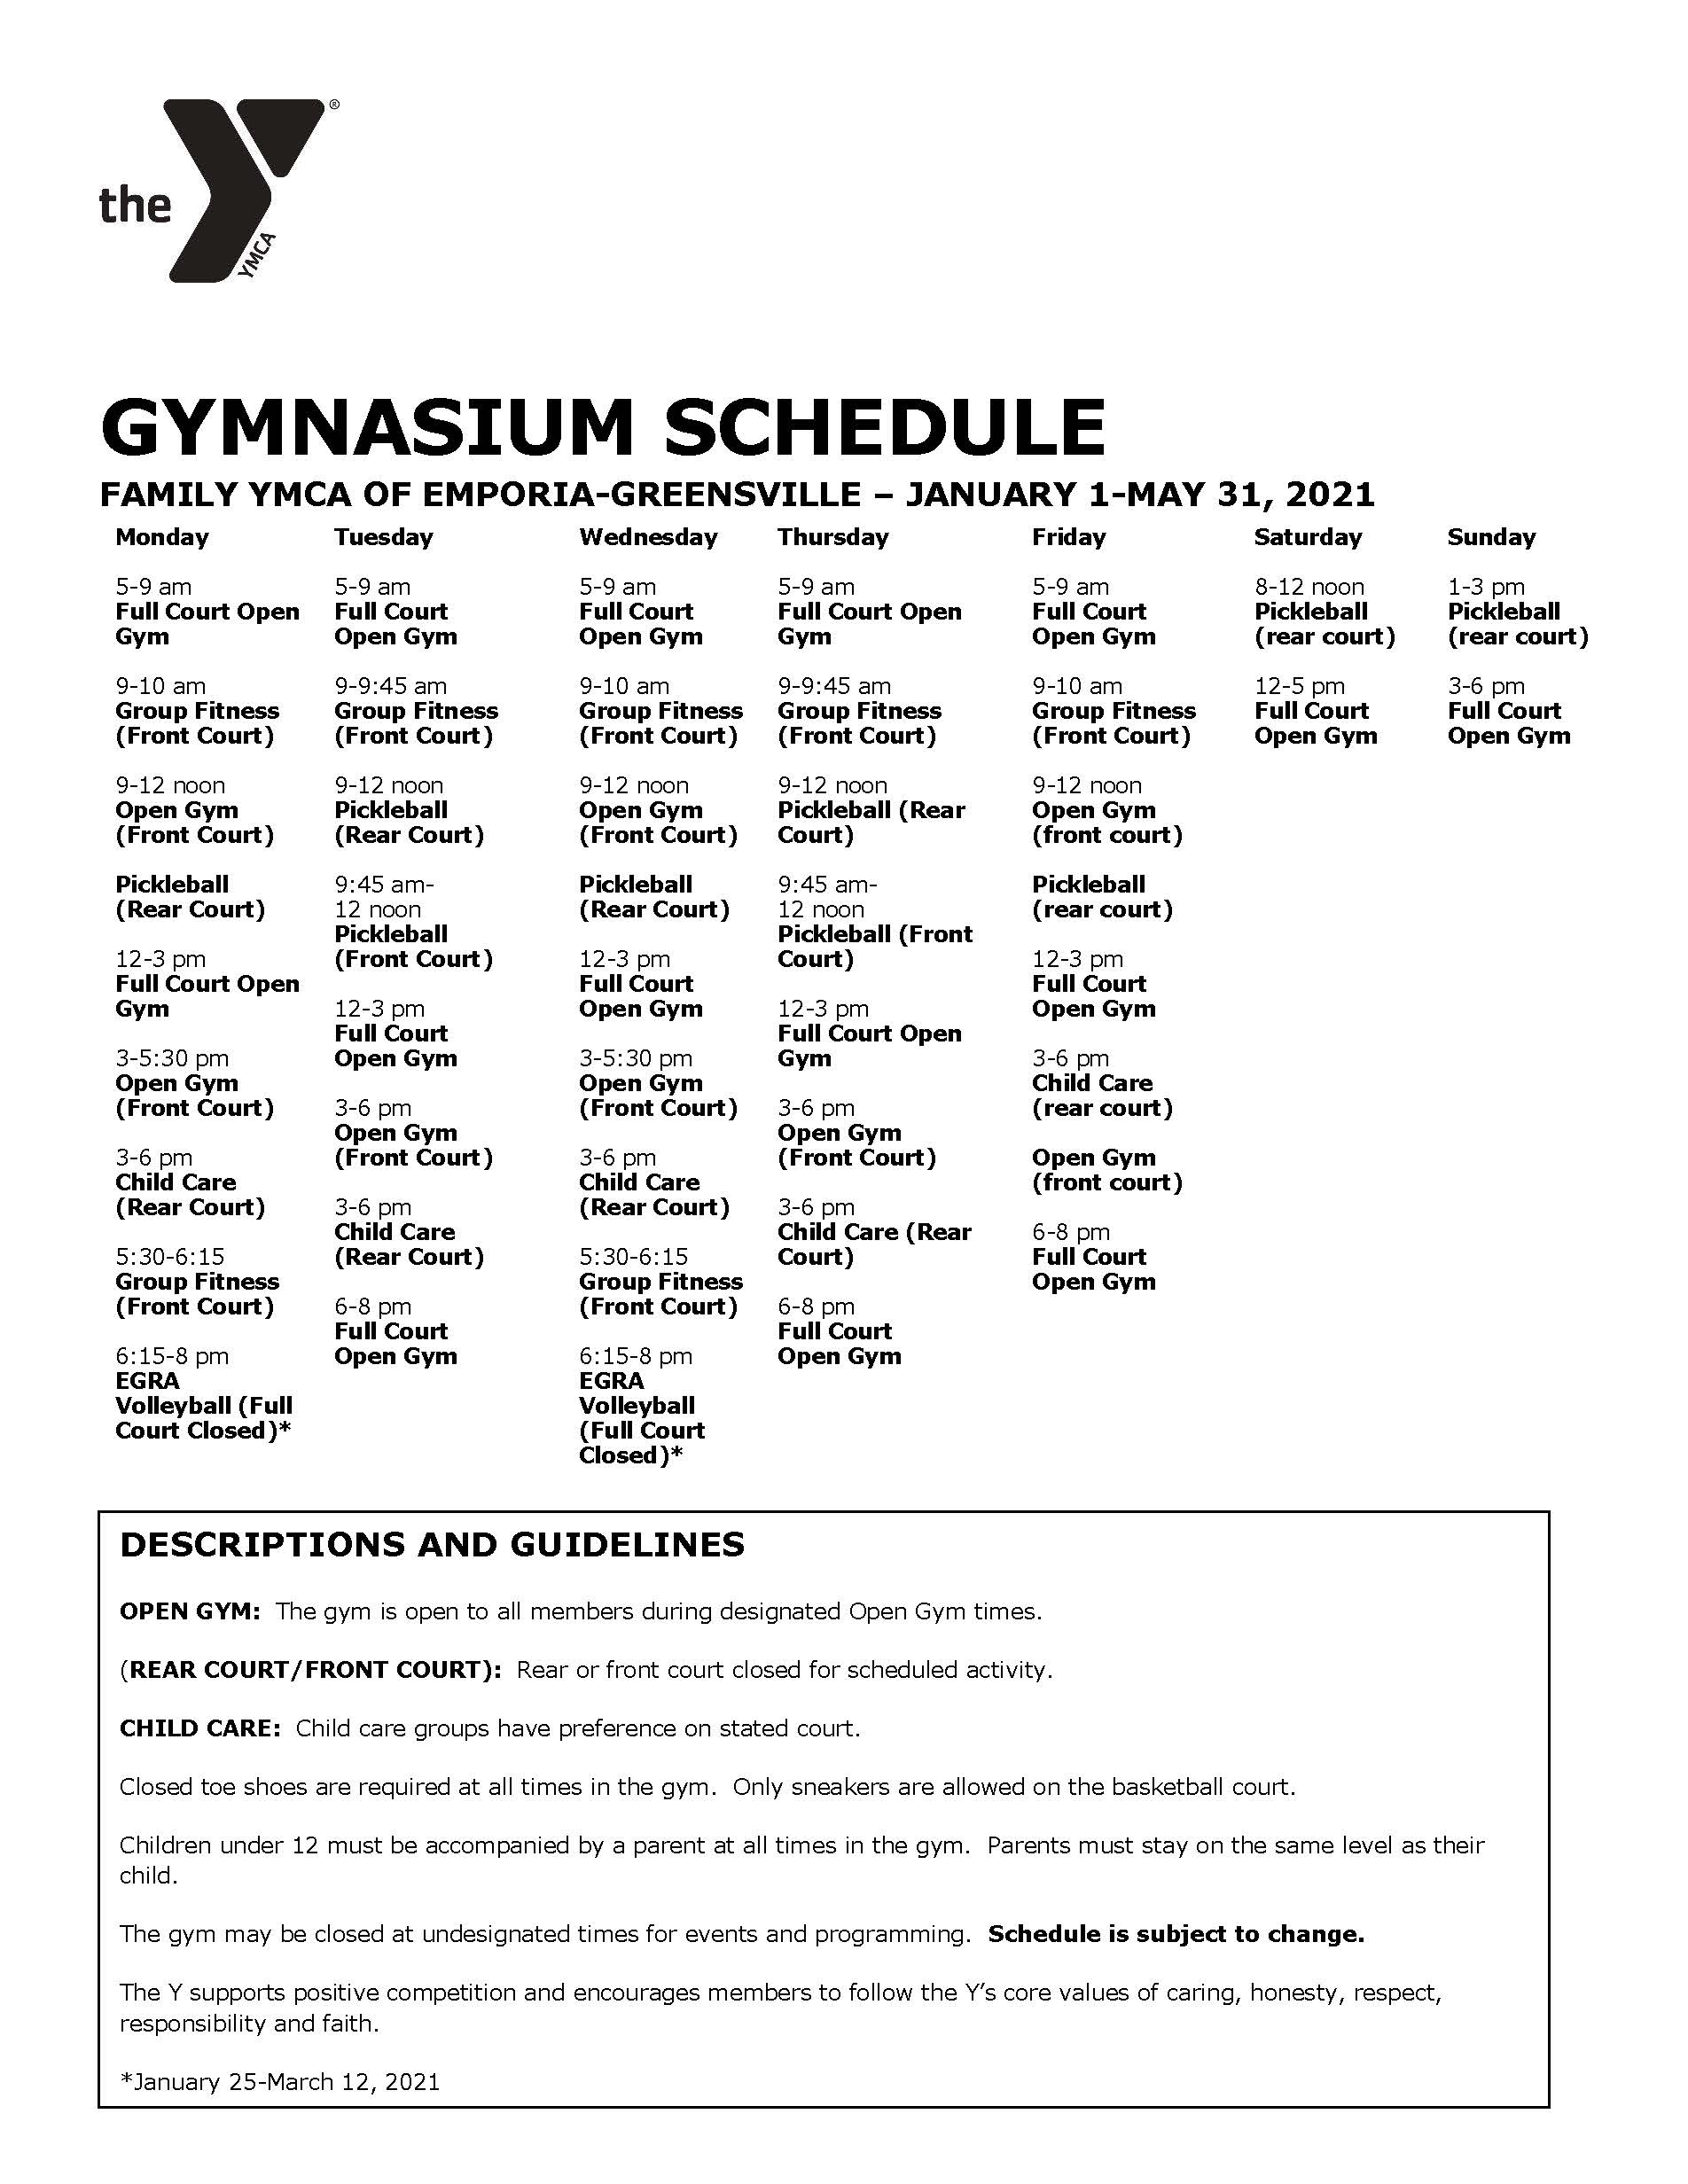 Winter gym schedule 1.12 5.31.21